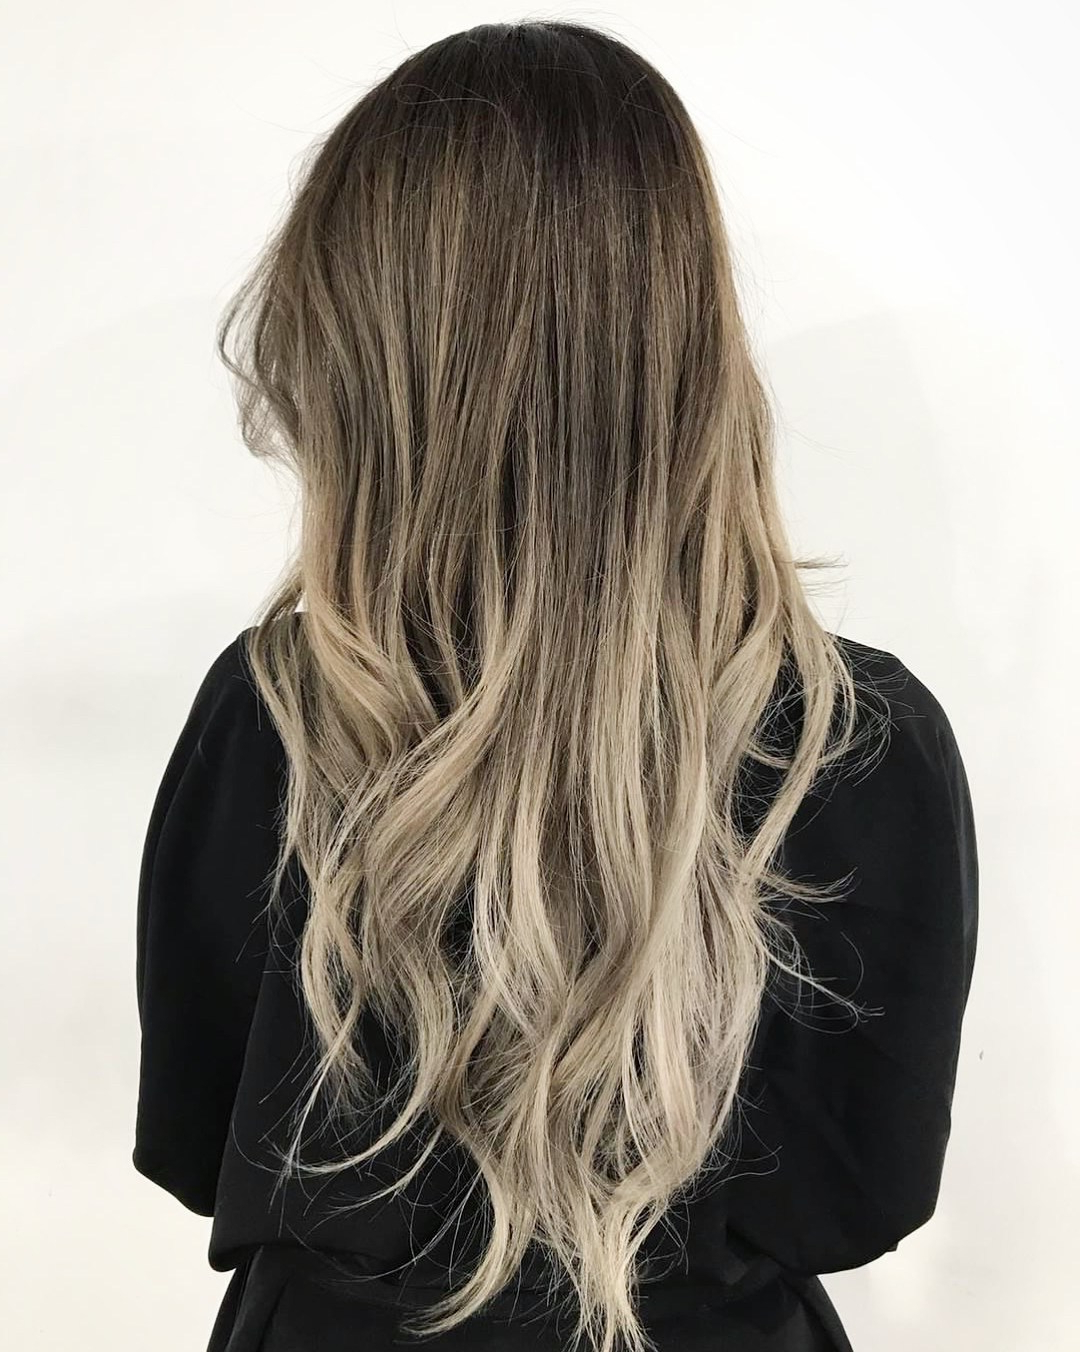 50 Luscious Hairstyles For Long Thin Hair – Hair Adviser For Favorite Shoulder Grazing Razored Haircuts For Straight Hair (Gallery 7 of 20)